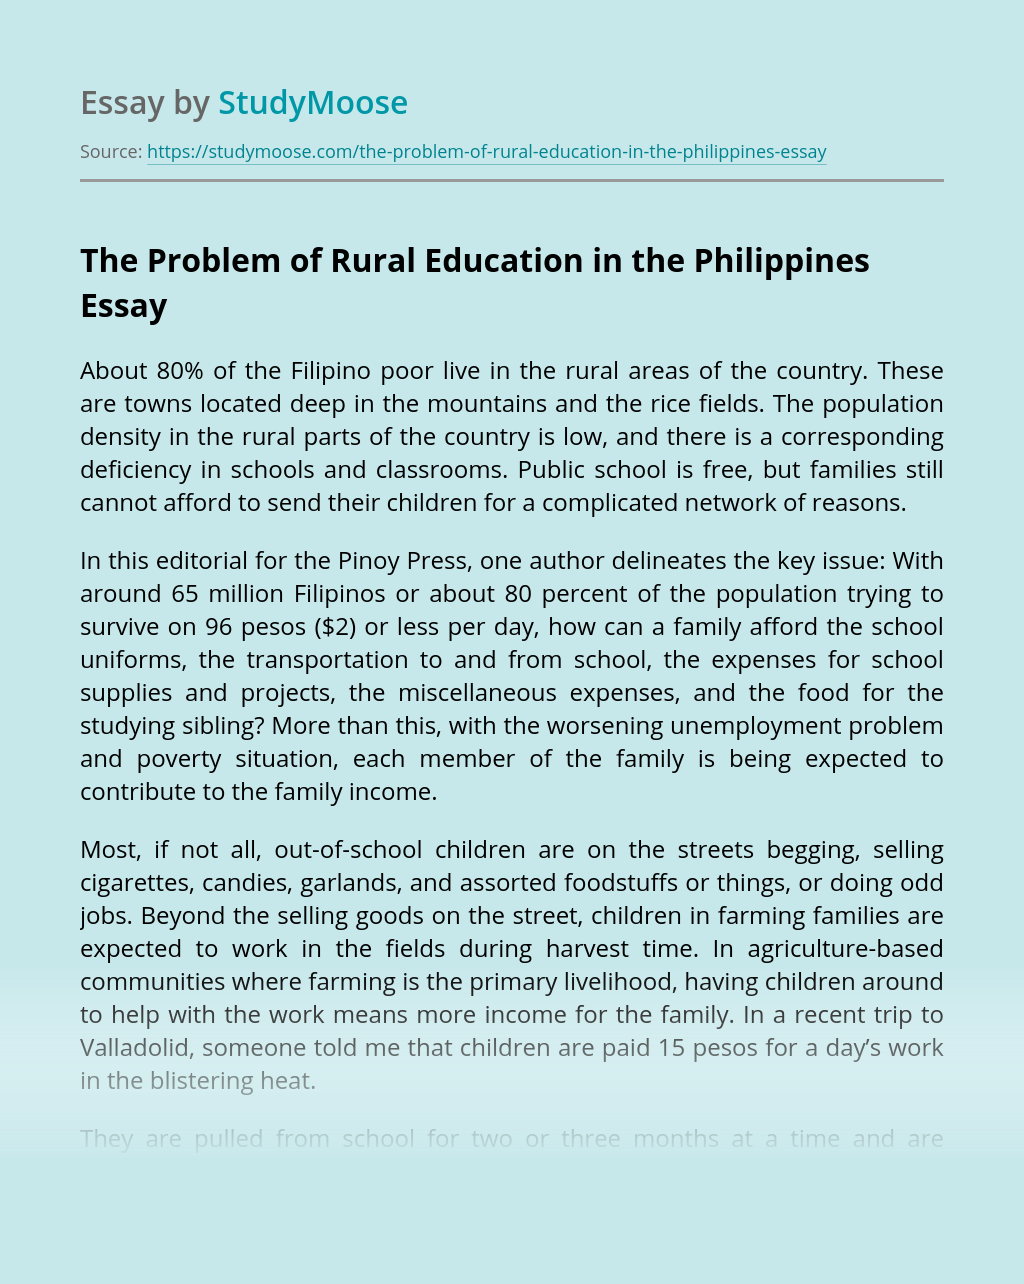 The Problem of Rural Education in the Philippines